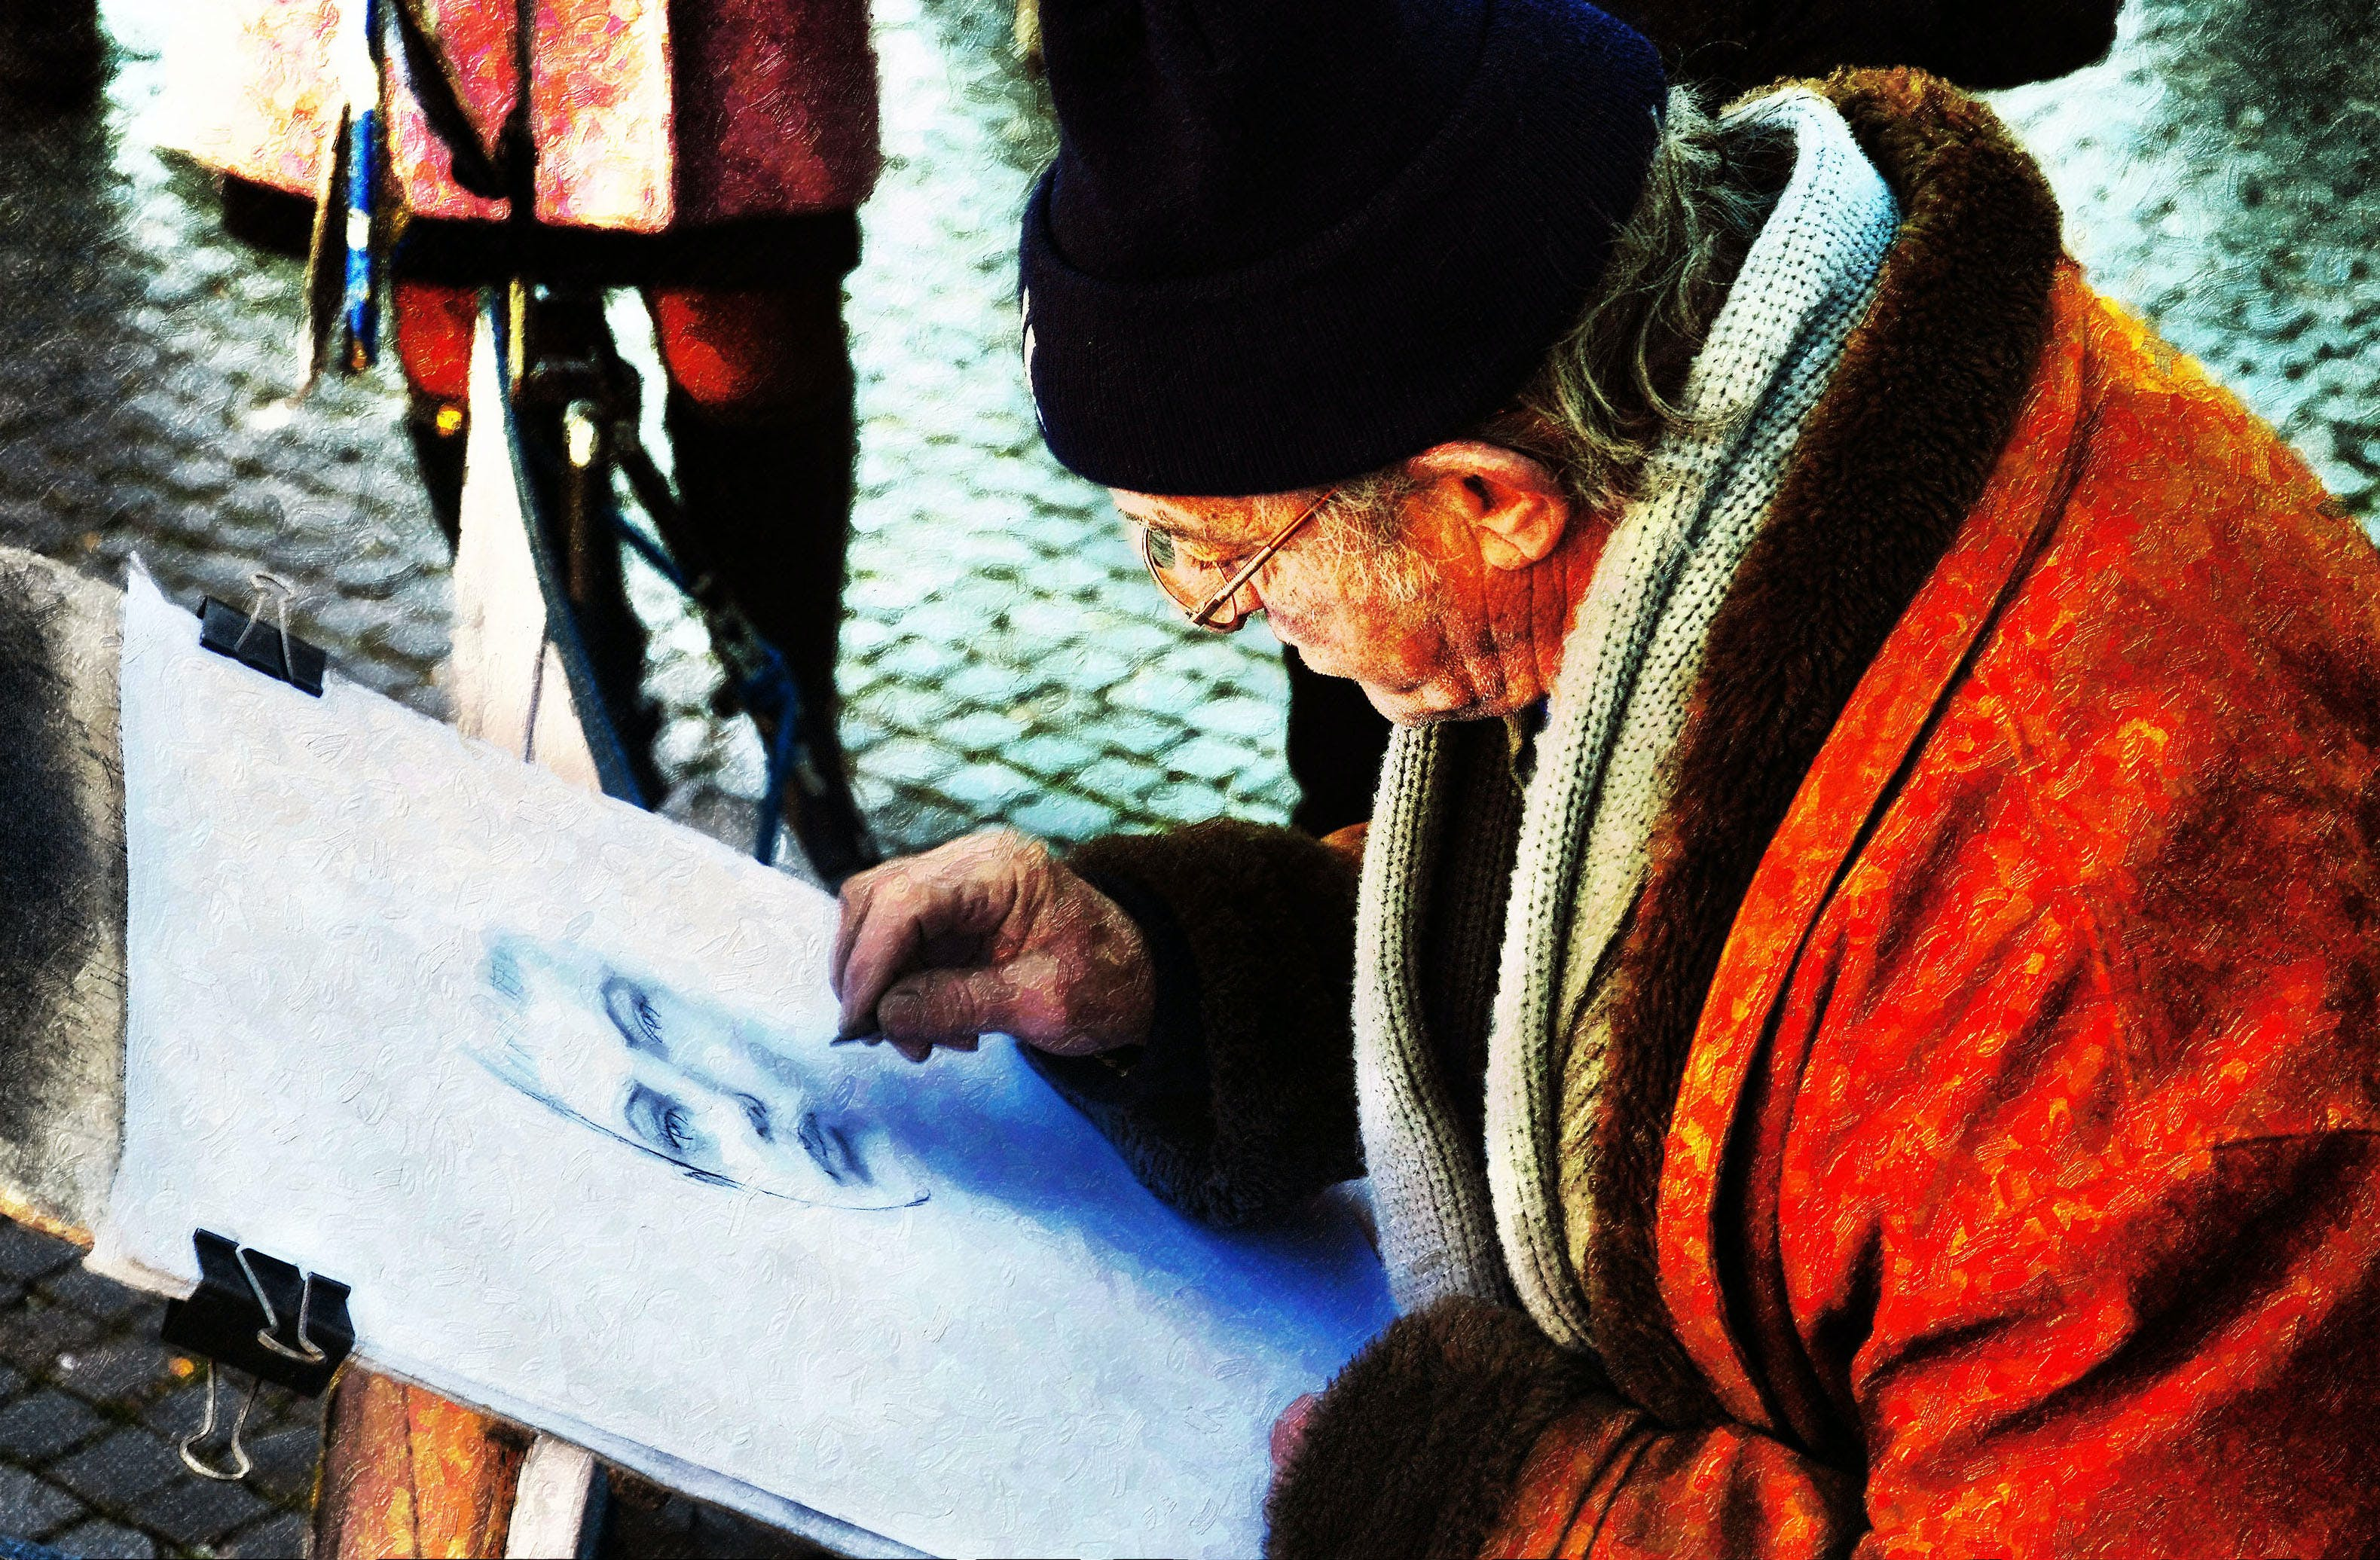 Free stock photo of street artist